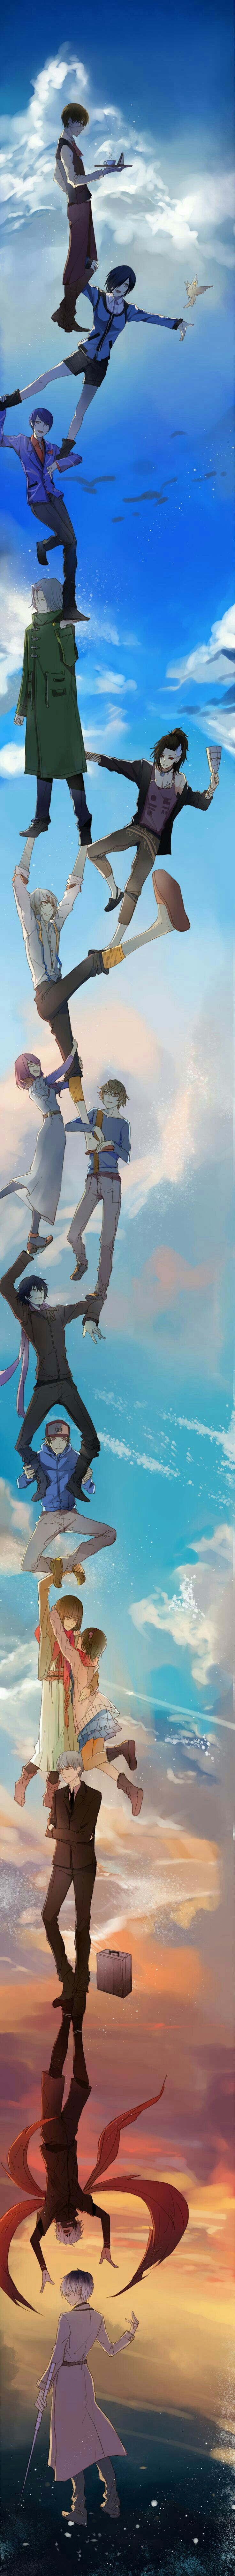 Tokyo Ghoul characters, tower, cool, funny; Tokyo Ghoul